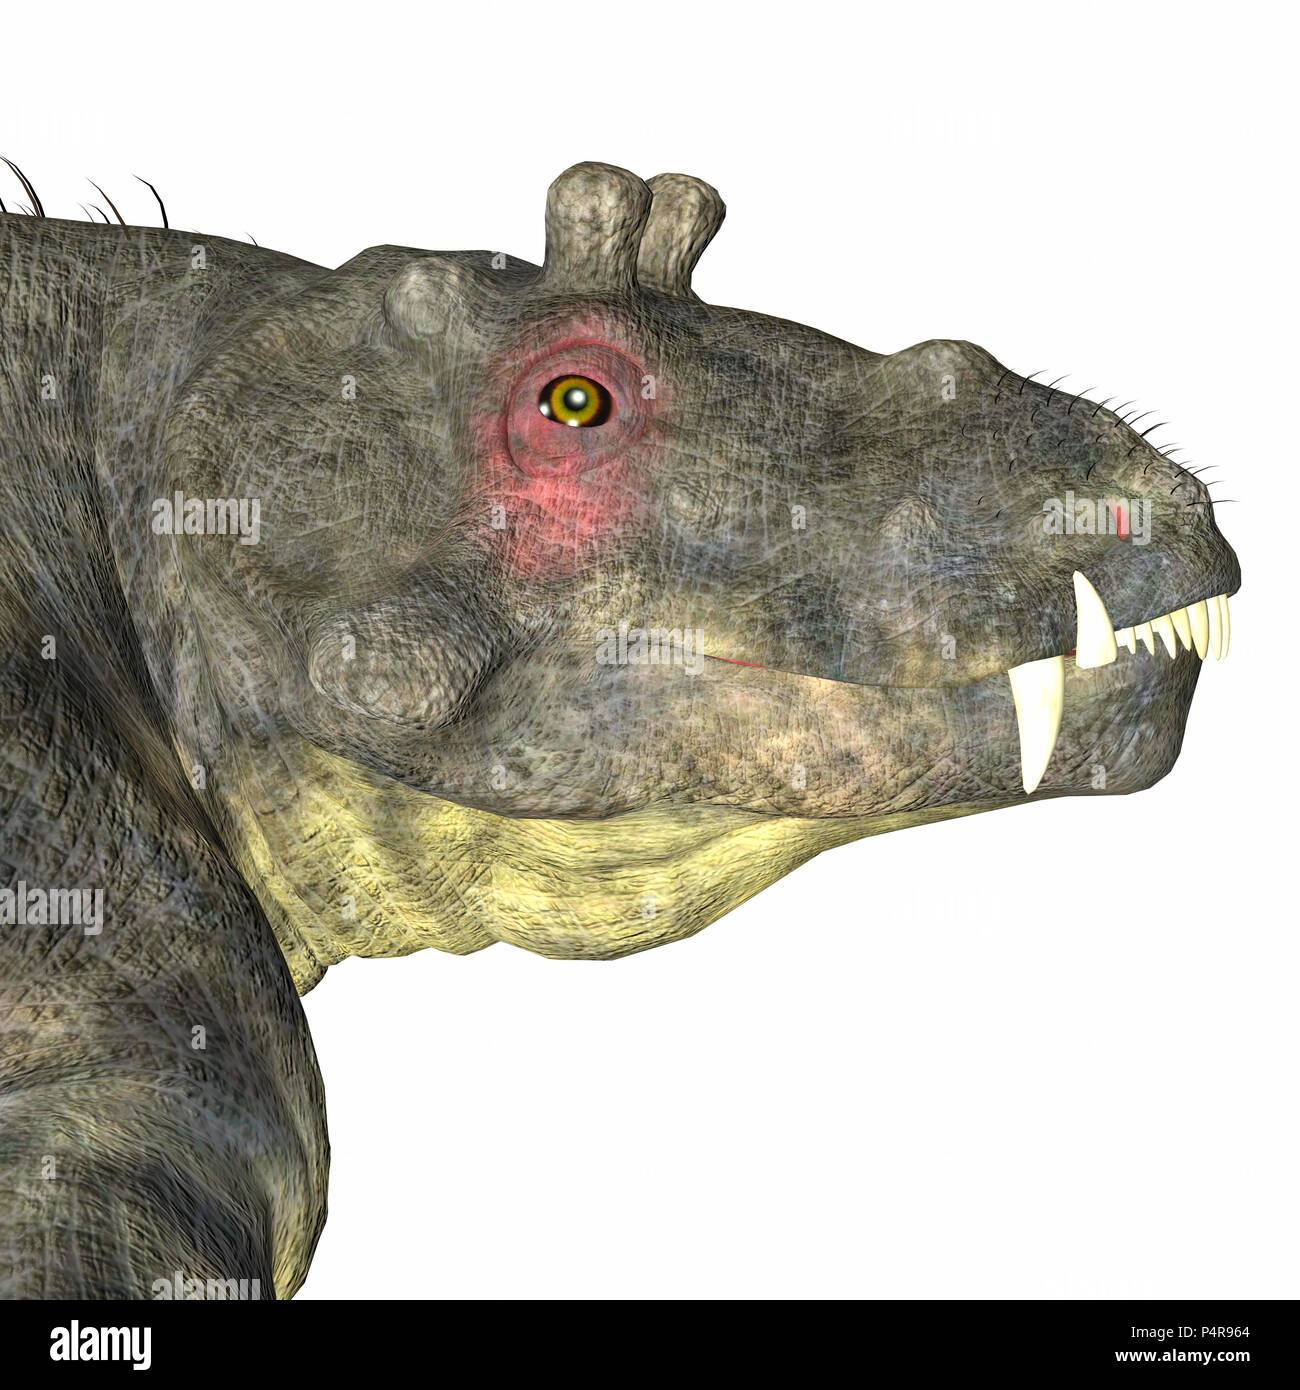 Estemmenosuchus uralensis was an omnivorous therapsid dinosaur that lived in the Permian Period of Russia. - Stock Image